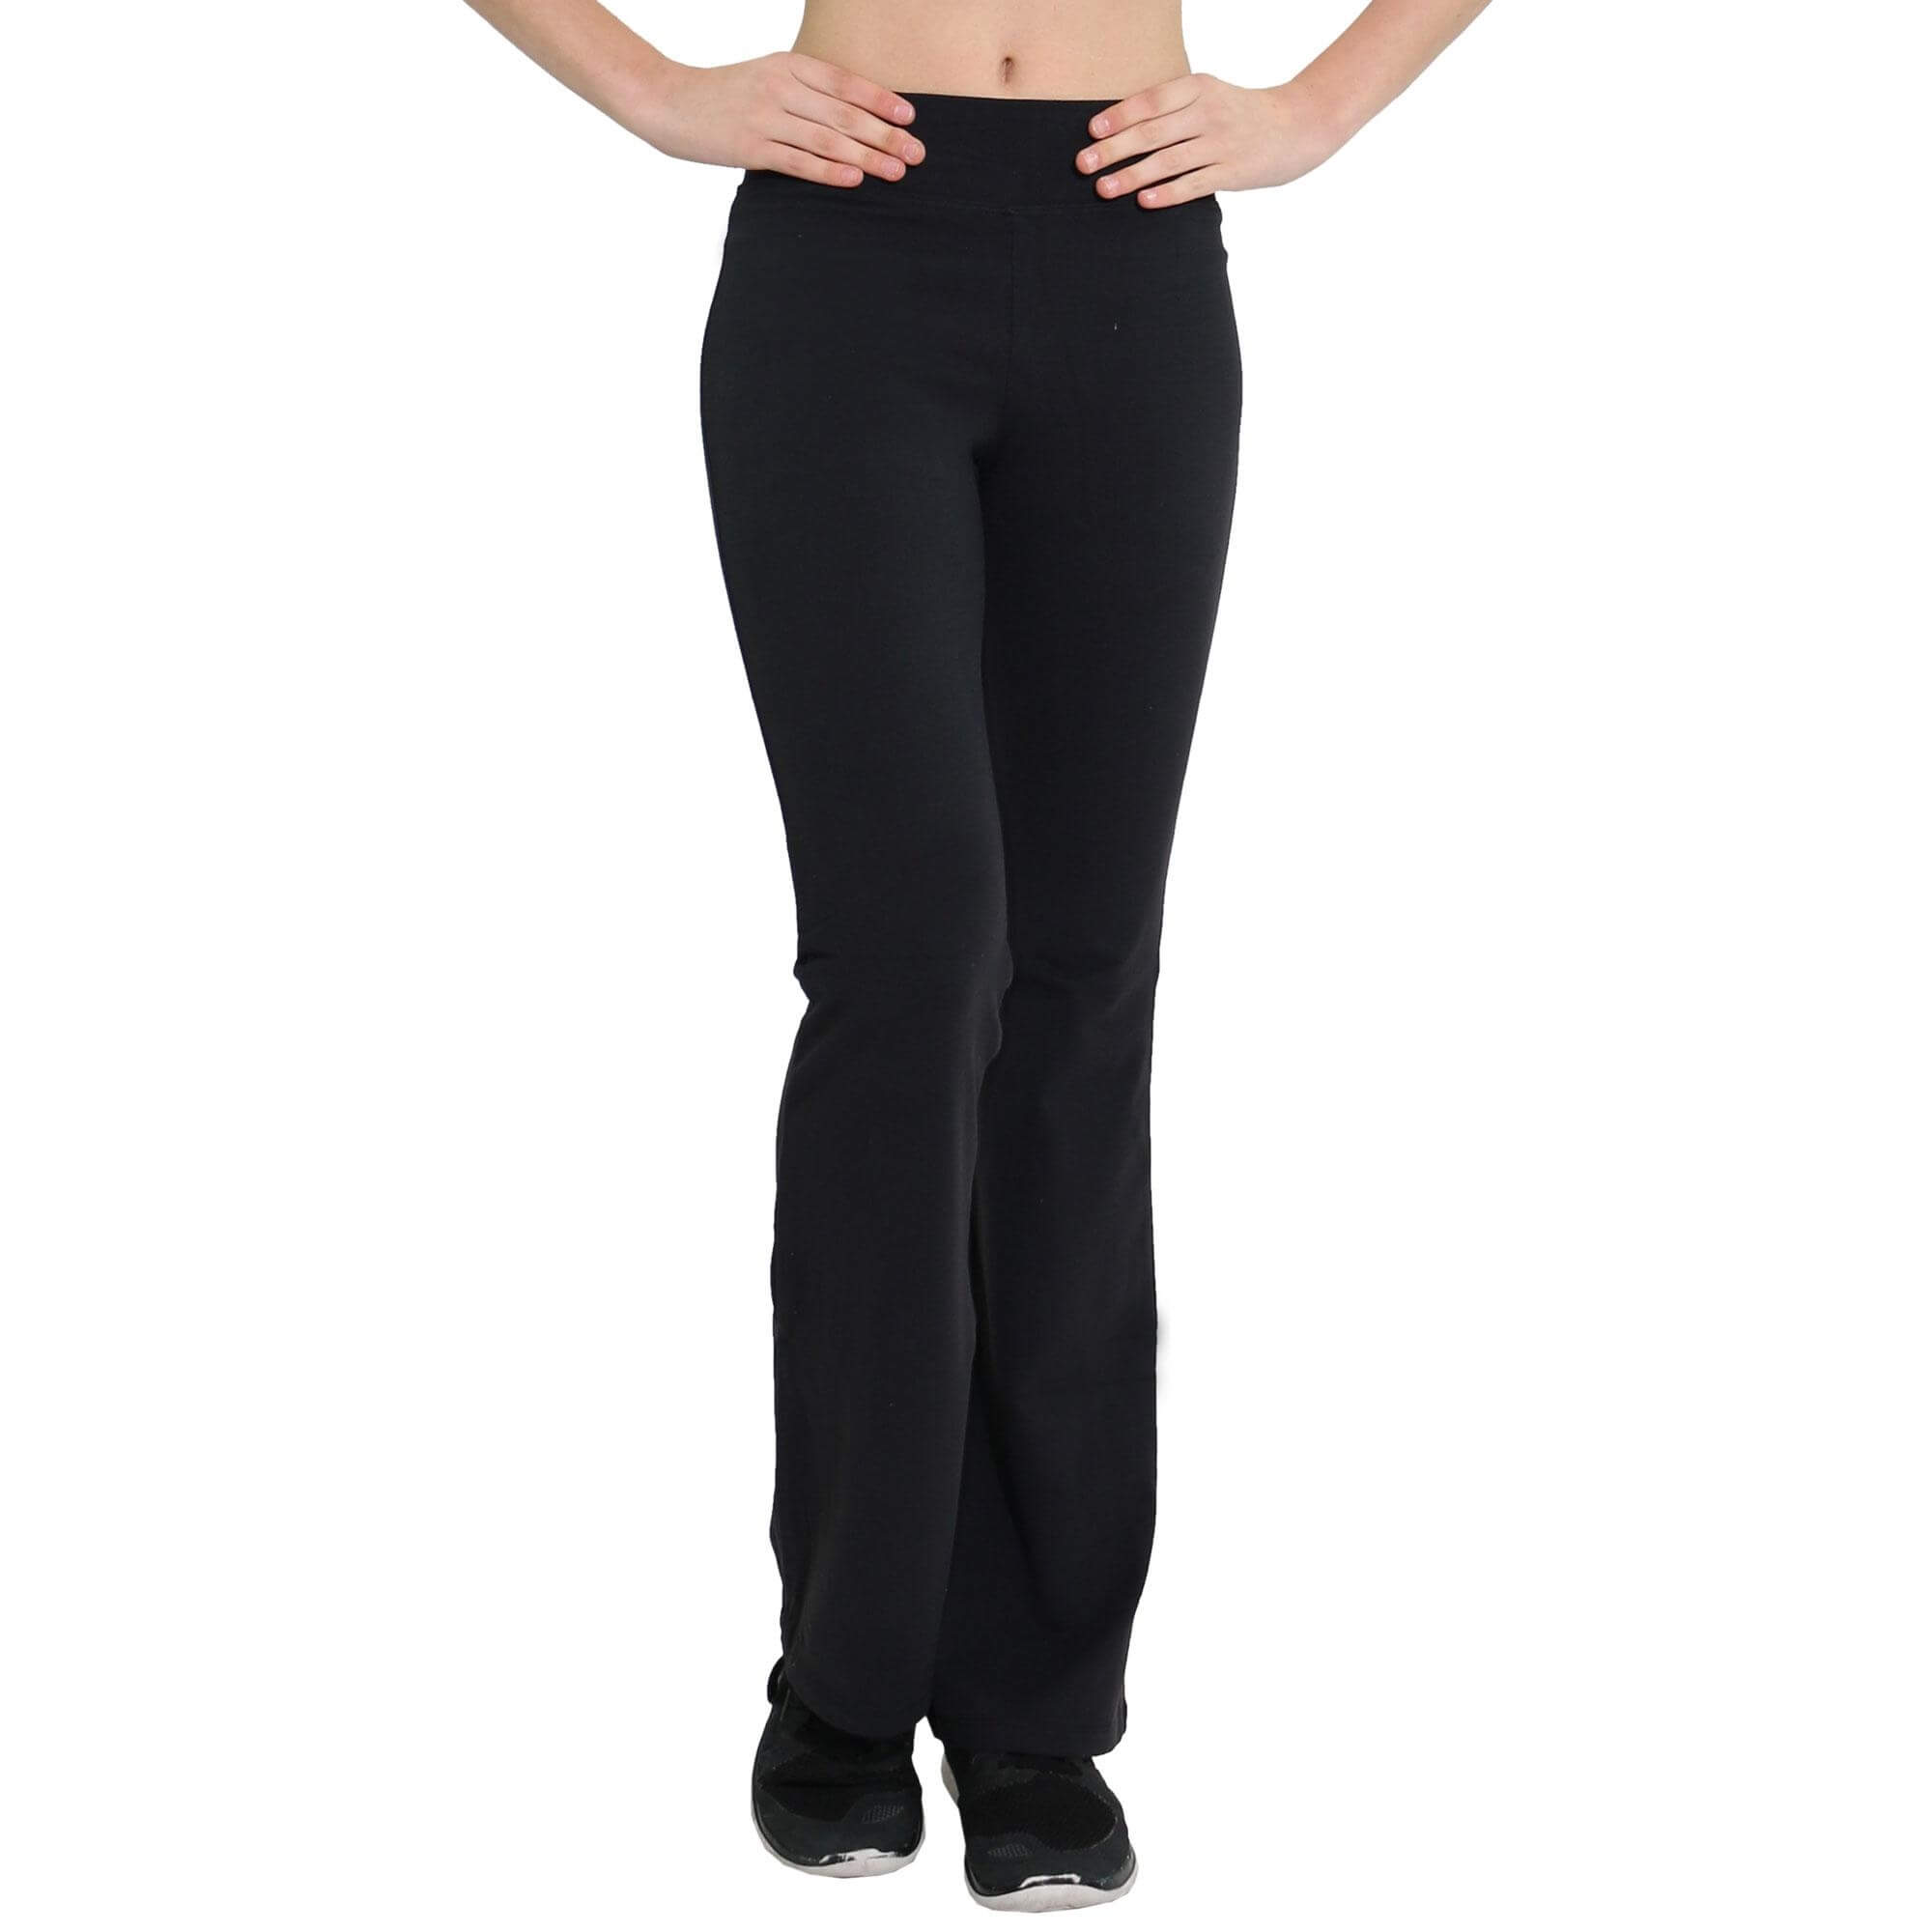 Danzcue Suede Supplex Balance Pants - Click Image to Close